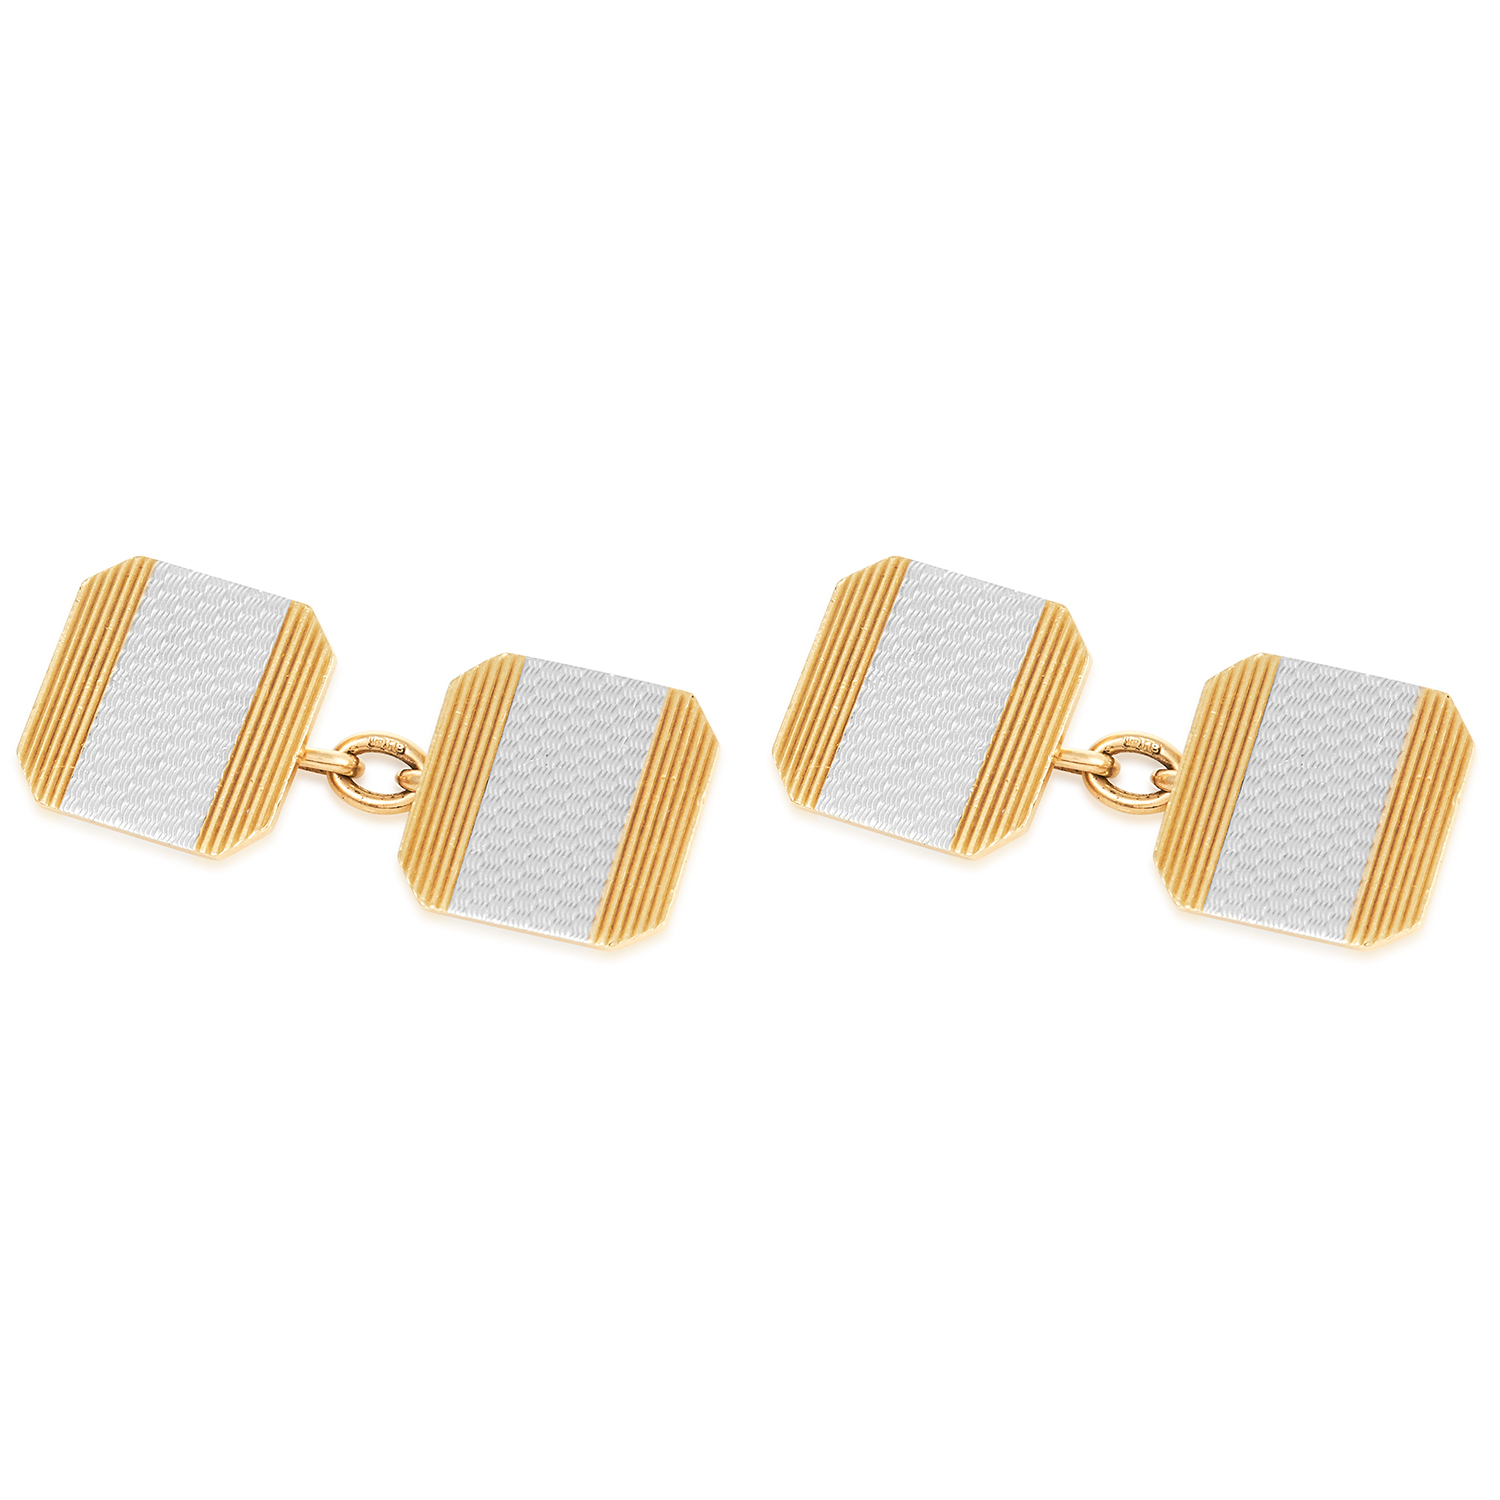 A VINTAGE CUFFLINKS in platinum and white gold, each comprising of two textured square faces in